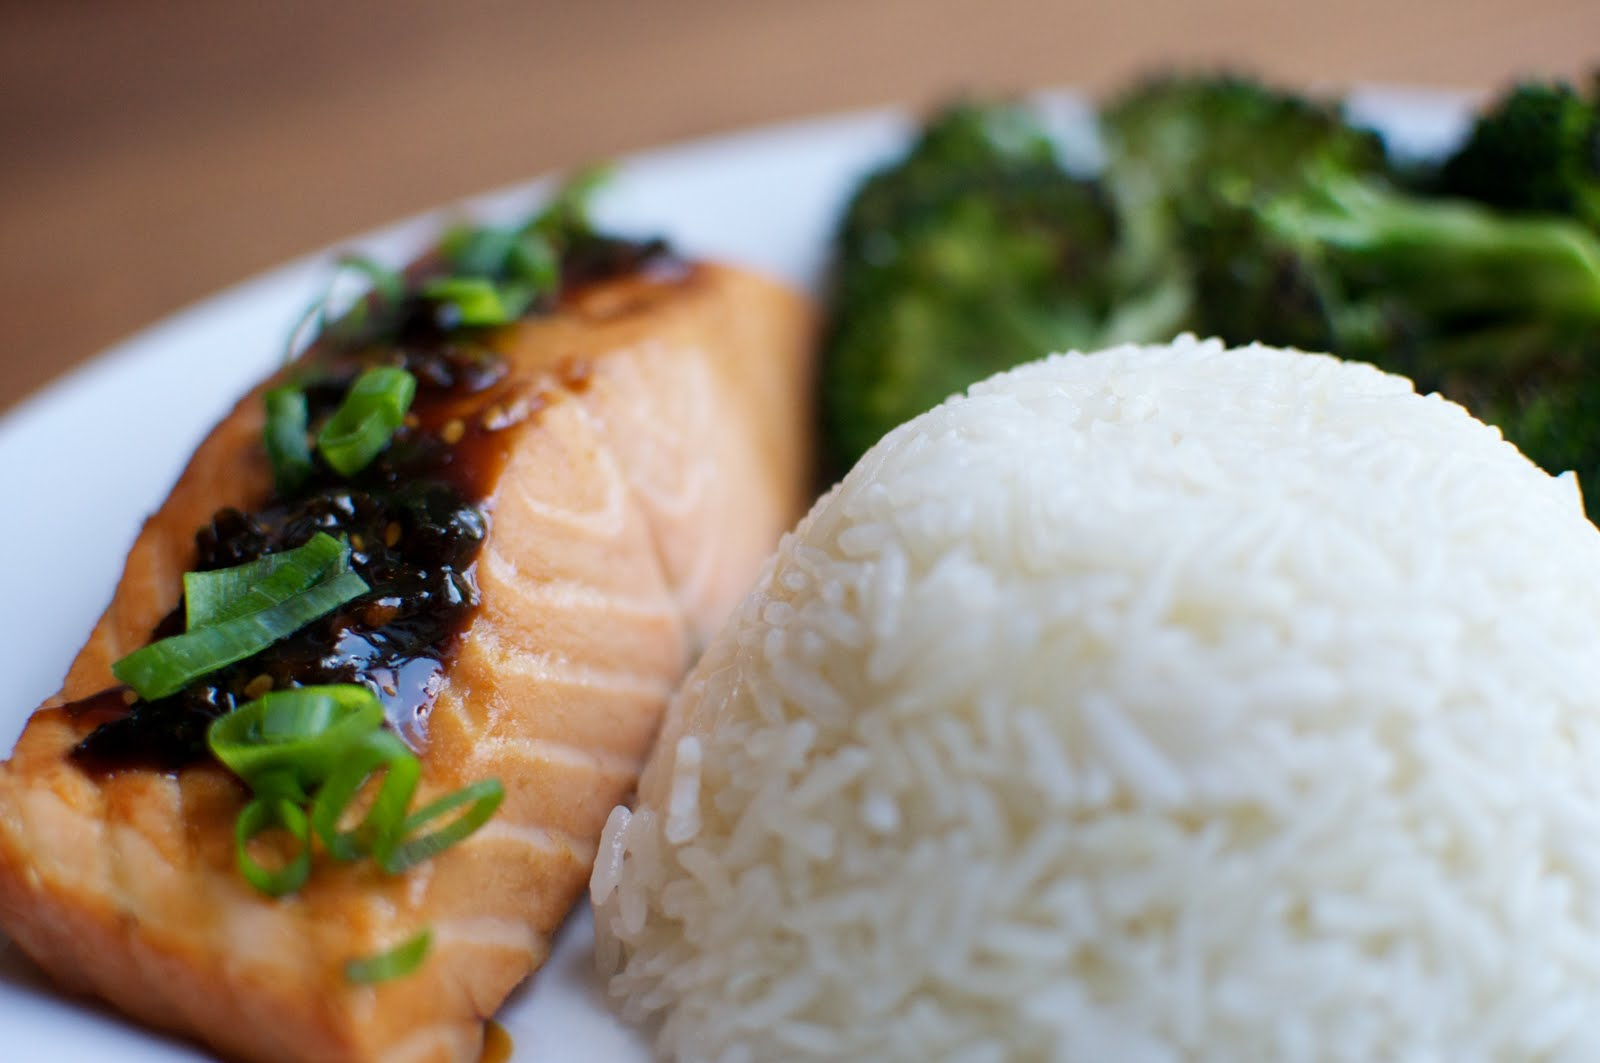 Fish and Veggies: Food52: Tangy Teriyaki Salmon